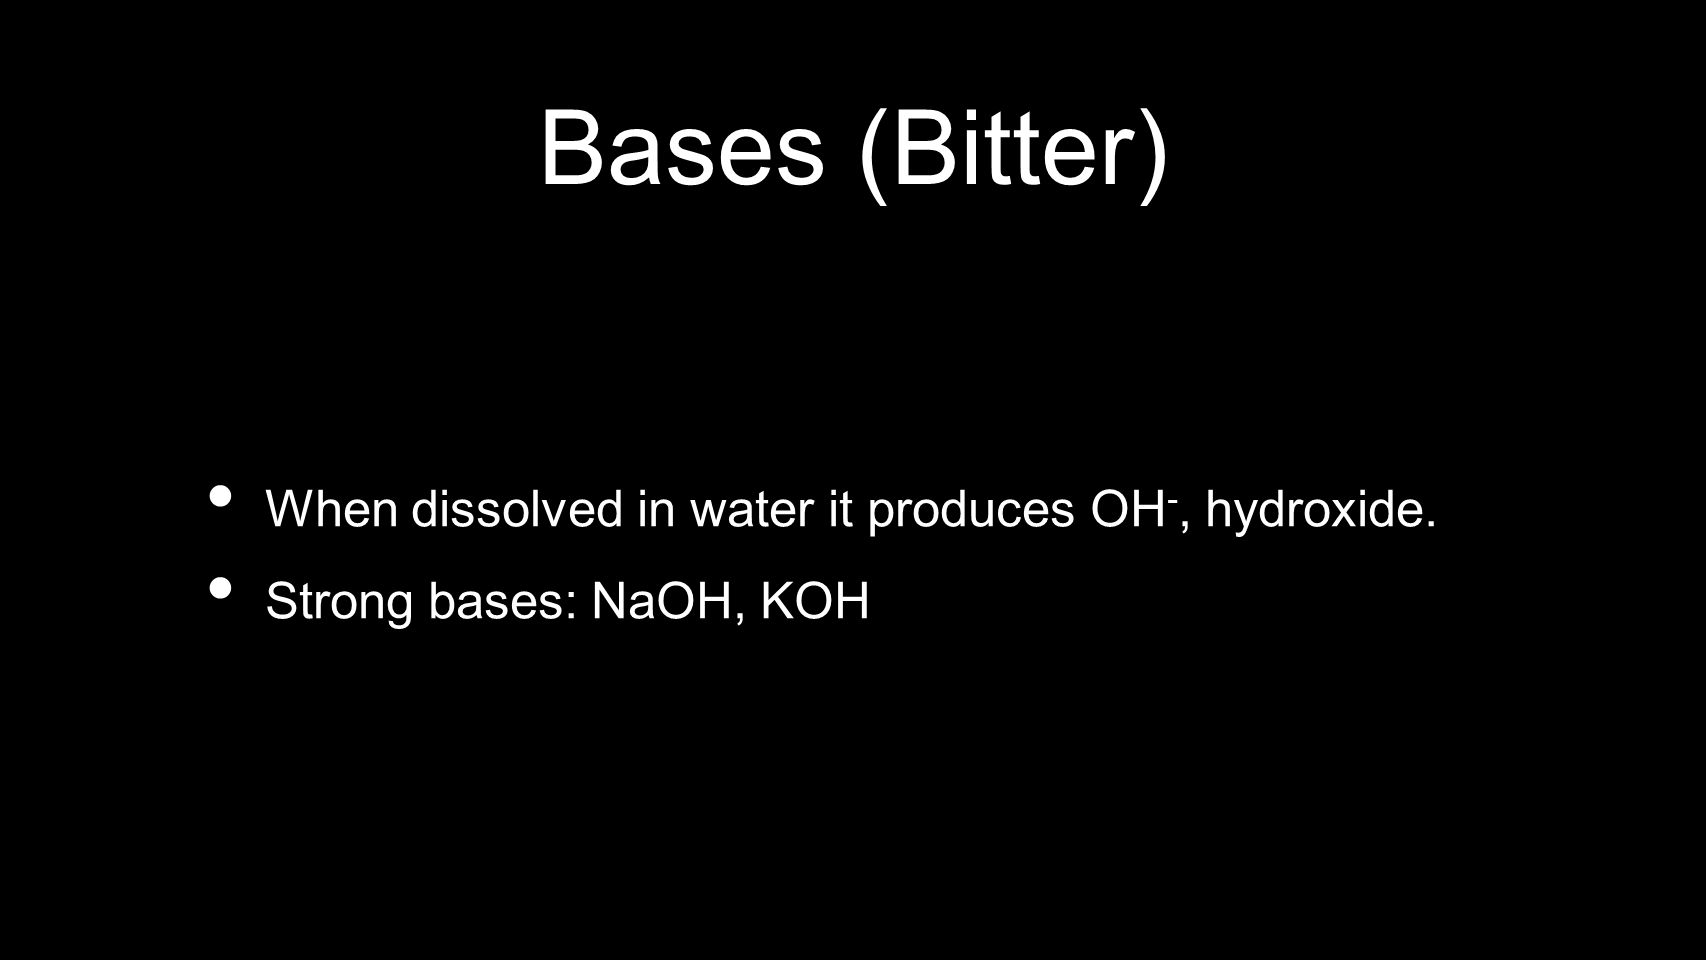 Bases (Bitter) When dissolved in water it produces OH-, hydroxide.